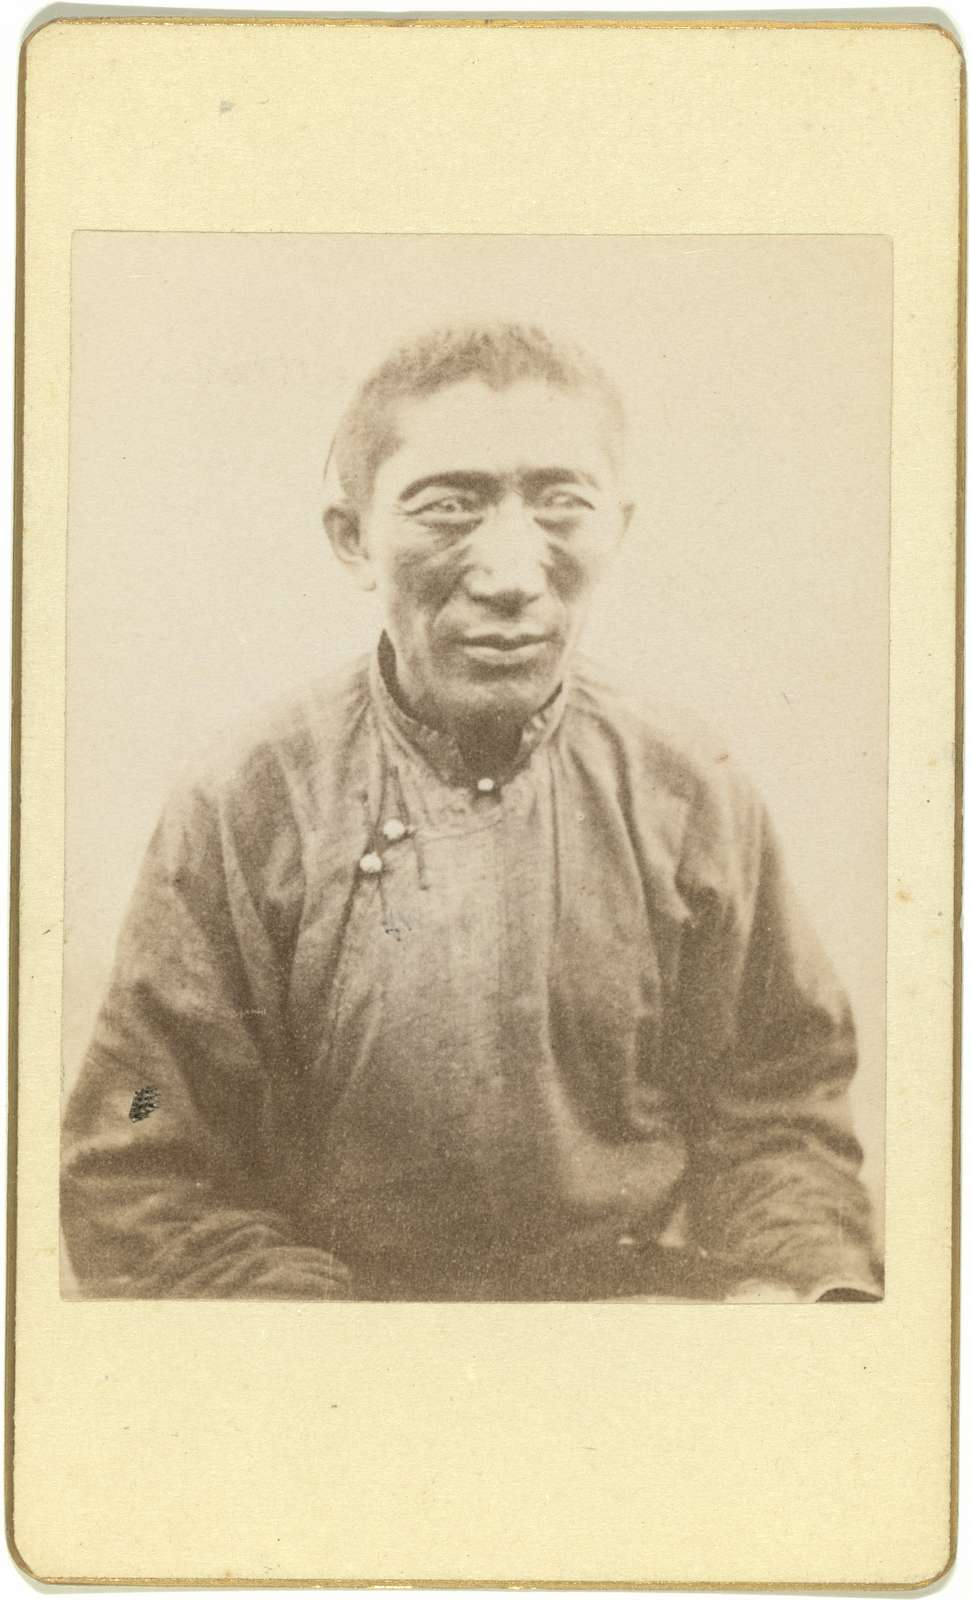 [Half-length portrait of man, seated, facing front]